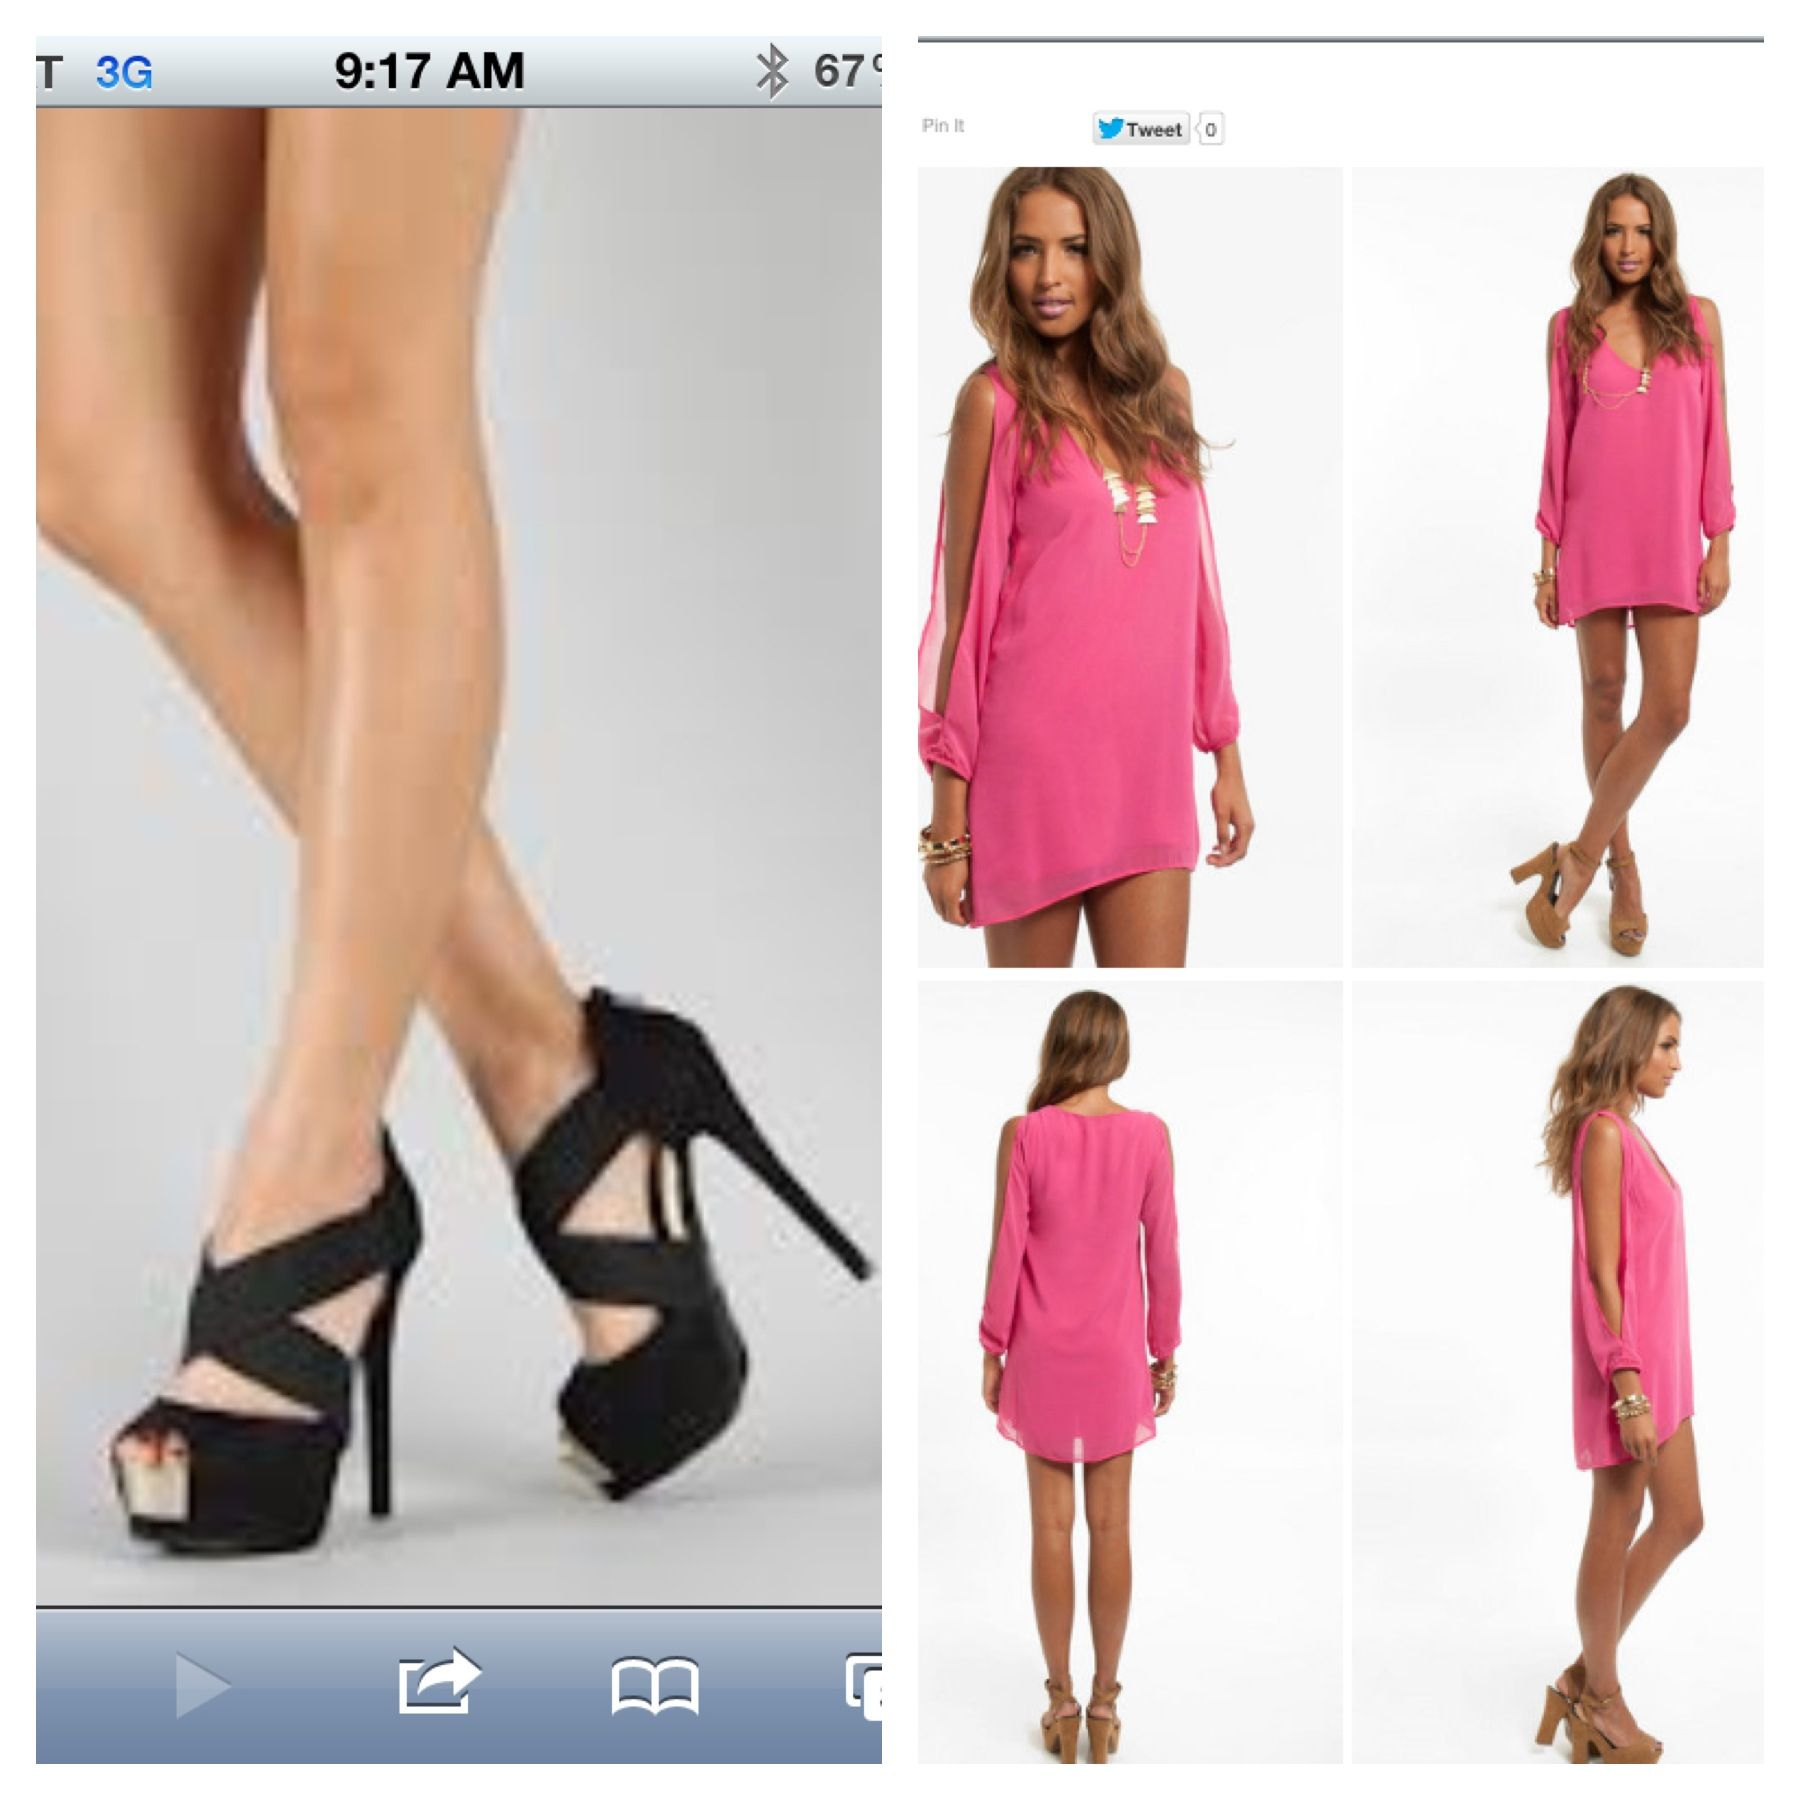 Pink Dress : Black Shoes : gold jewelry